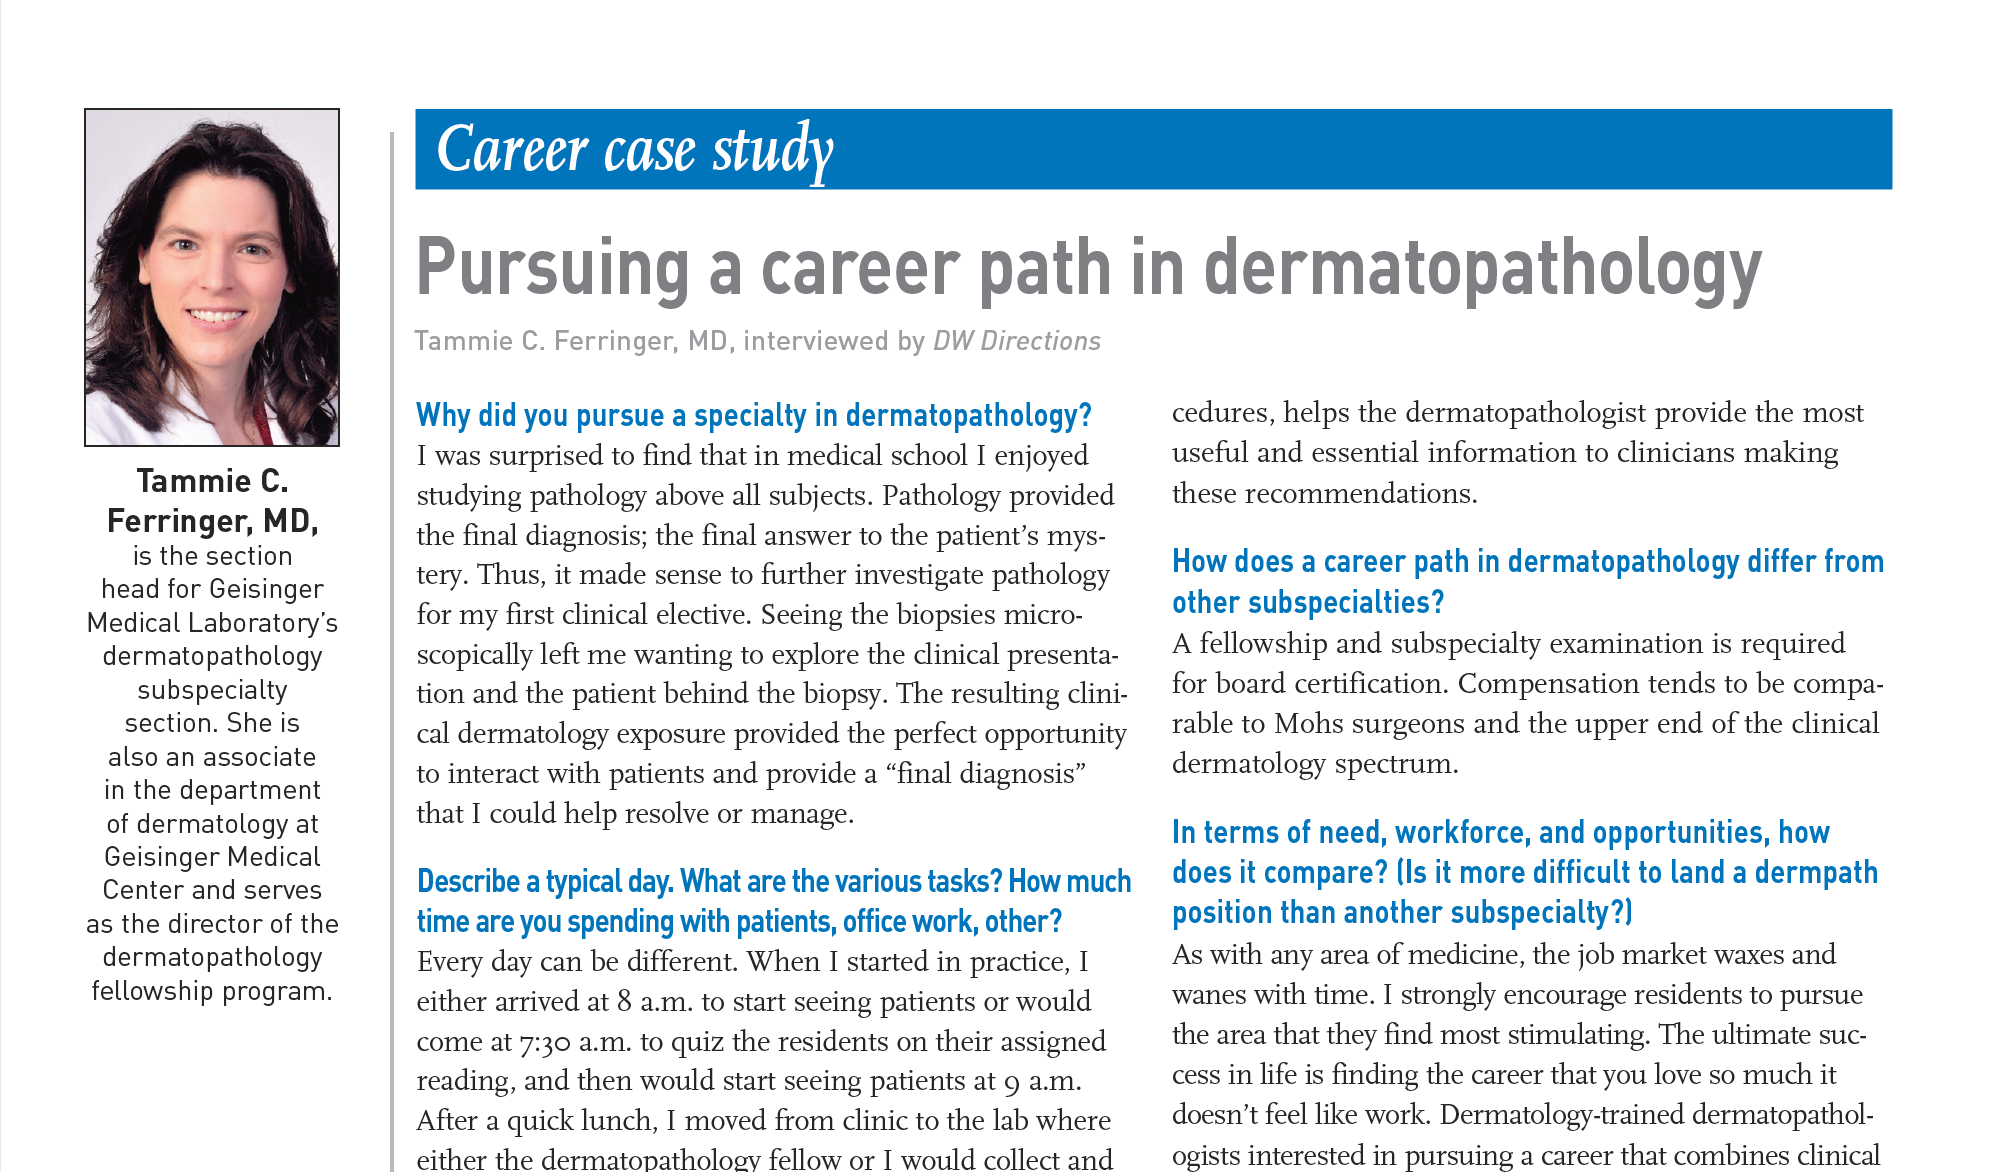 Image of dermatopathology career case study